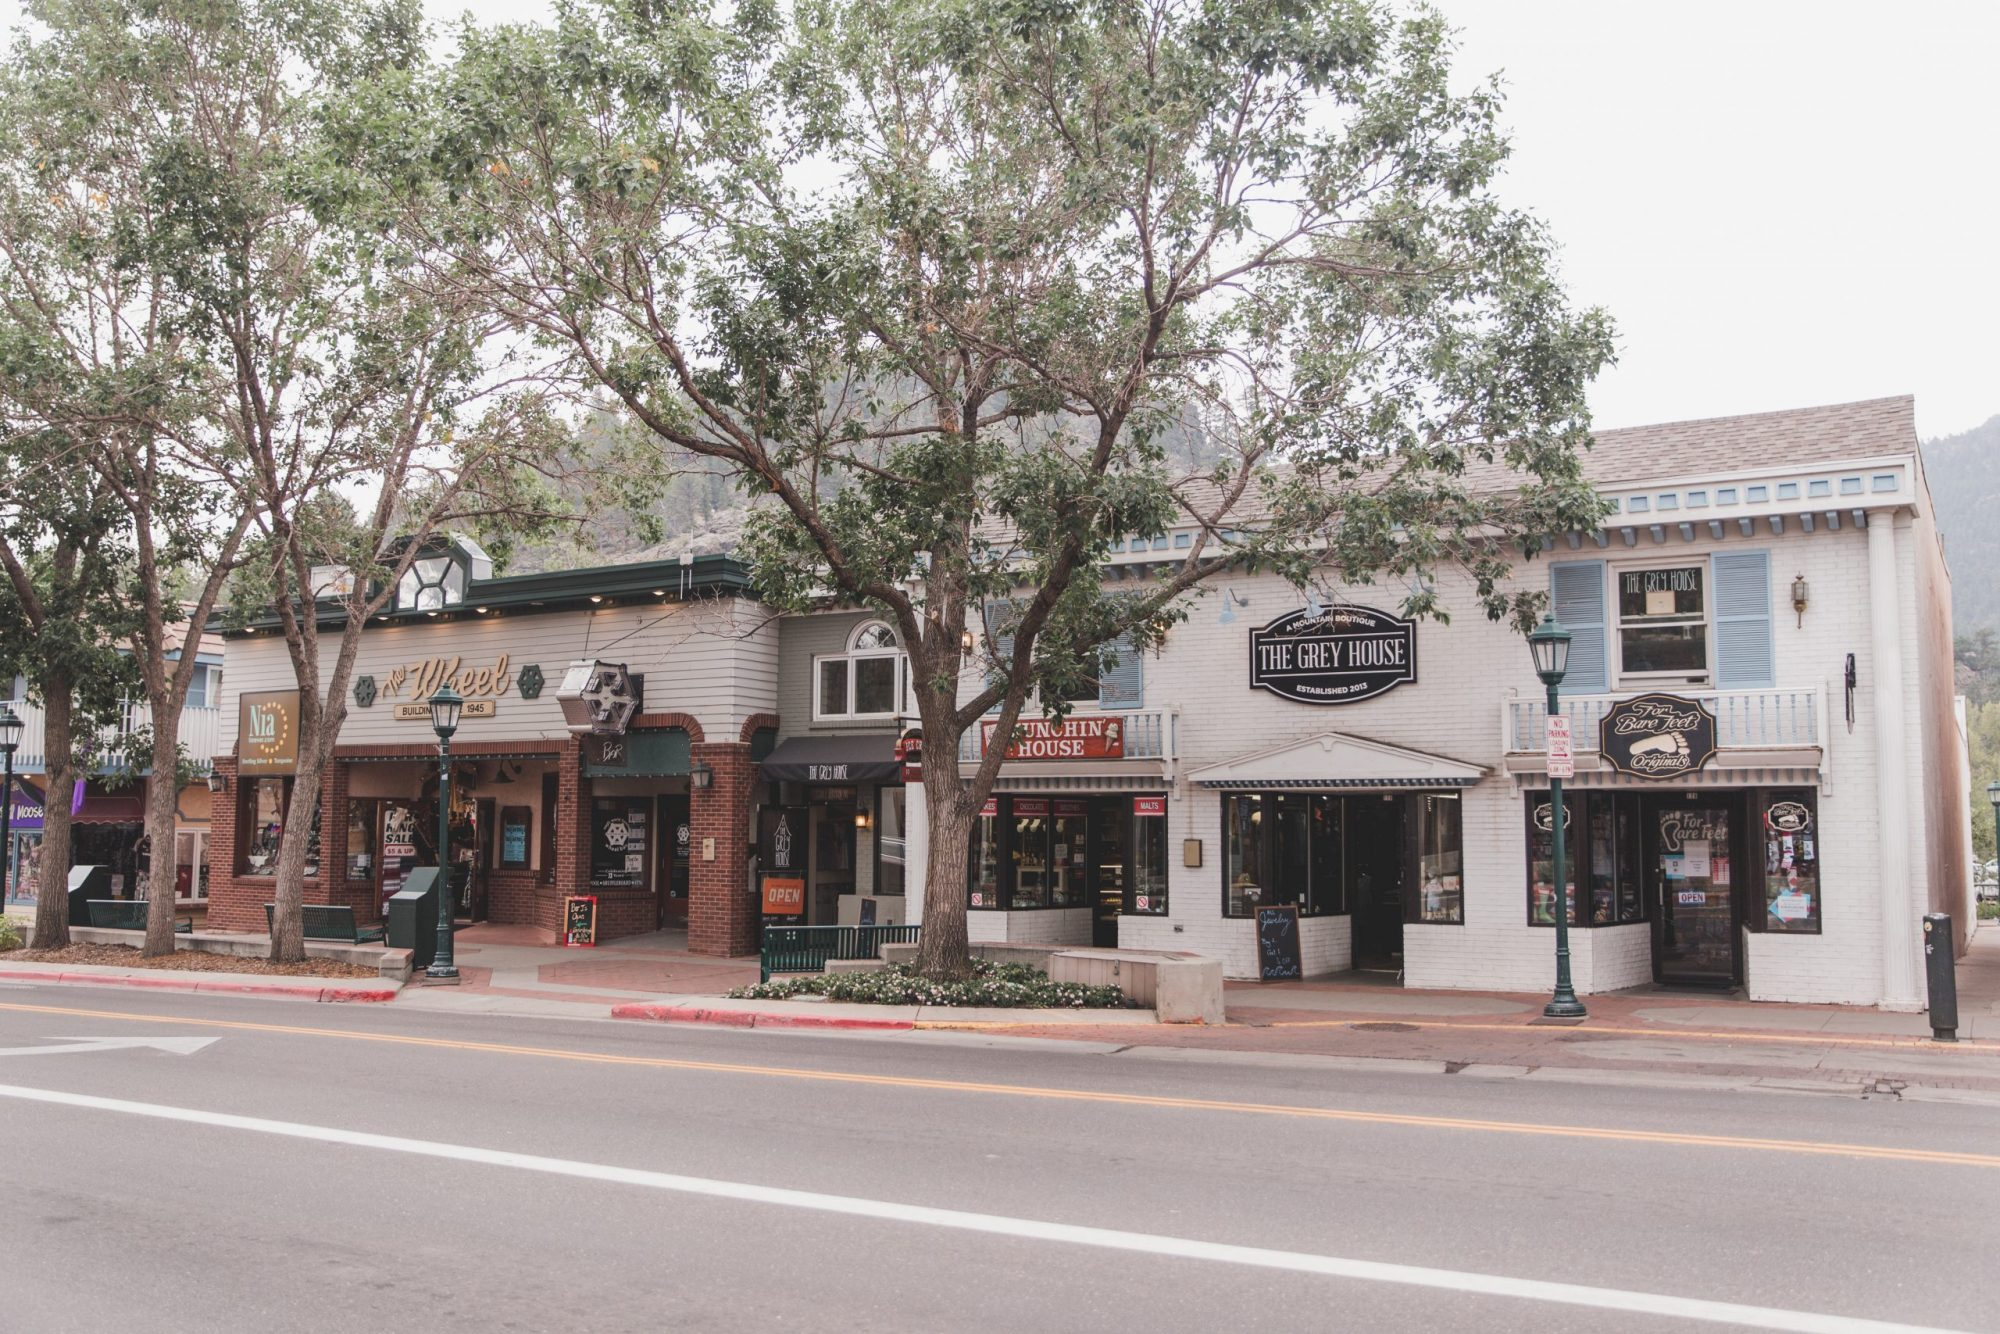 Tree-lined street with stores in Estes Park, Colorado